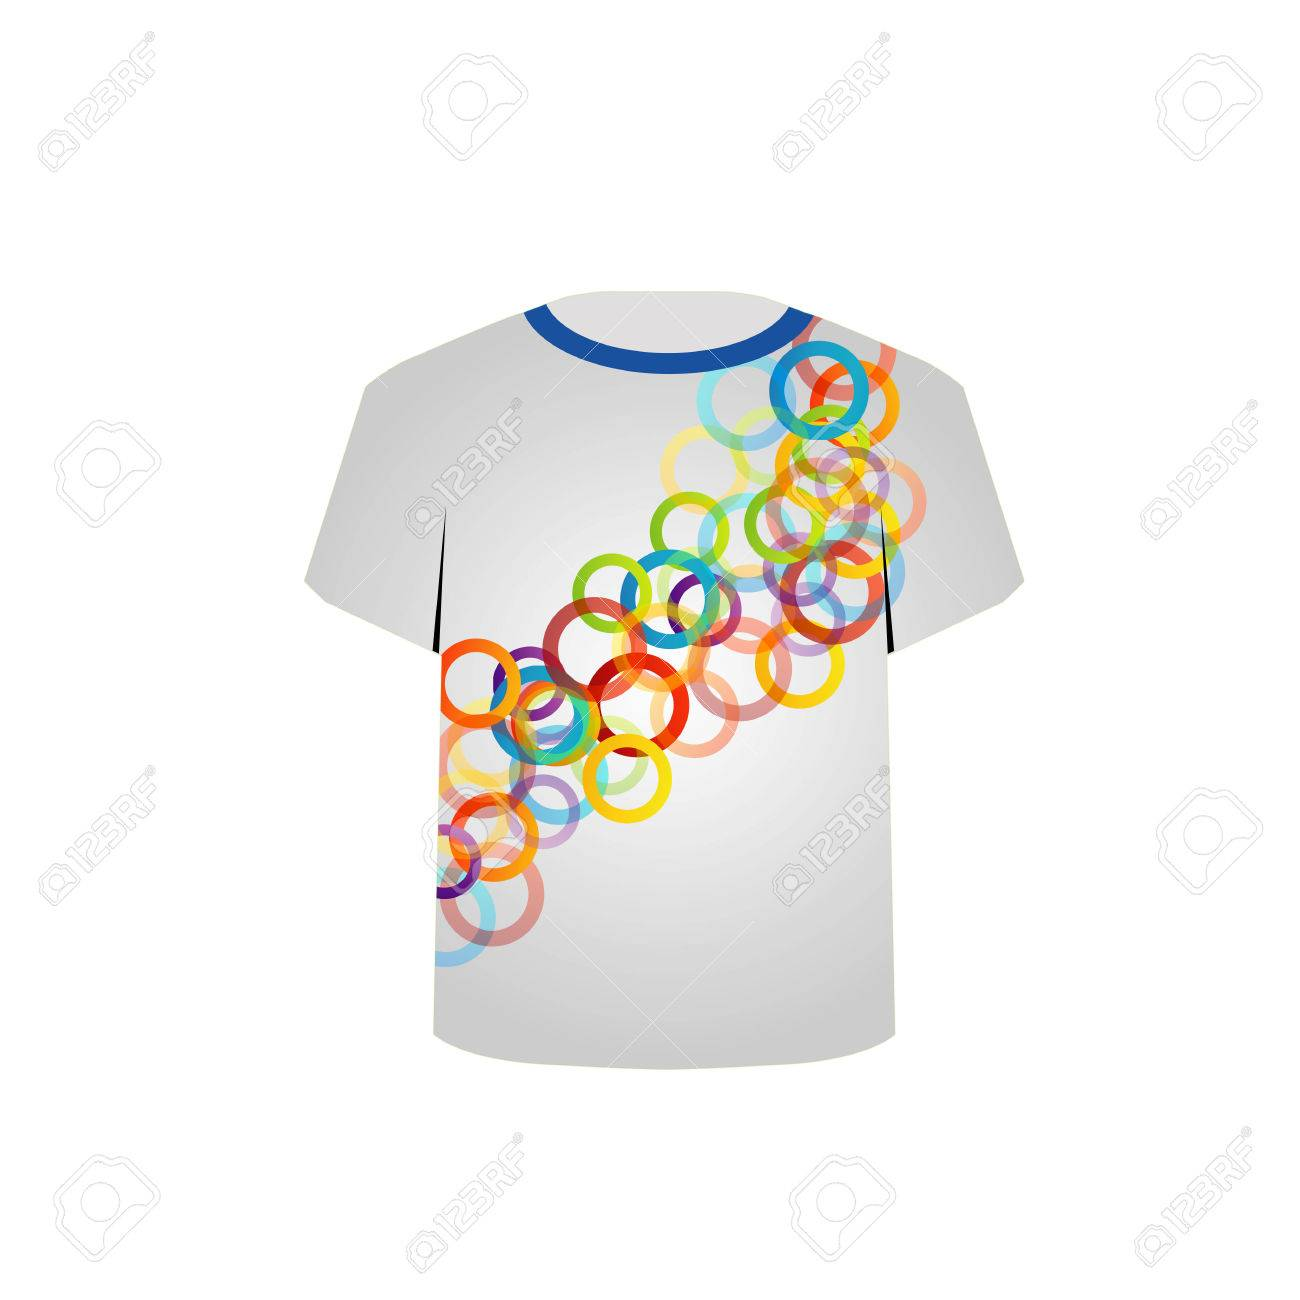 graphic about Printable T Shirt Template called T Blouse Template with Printable t-blouse impression